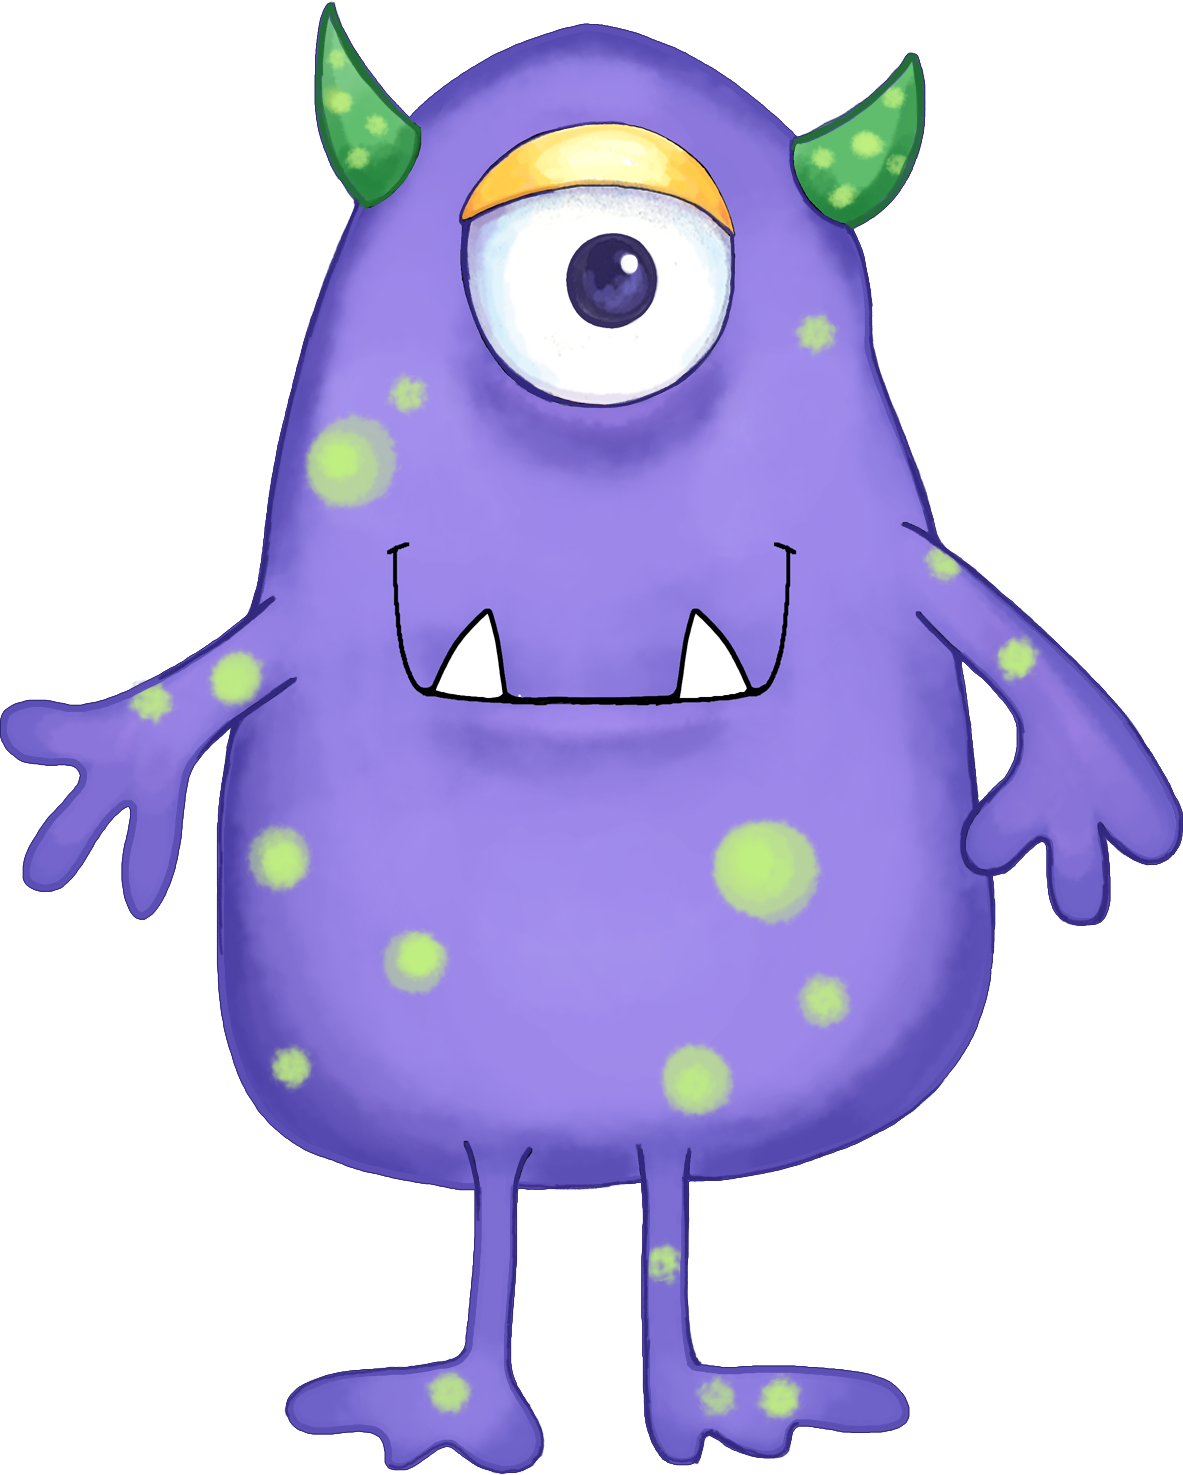 Smelly money clipart graphic transparent Your Free Art: Cute Blue, Purple and Green Cartoon Alien Monsters ... graphic transparent